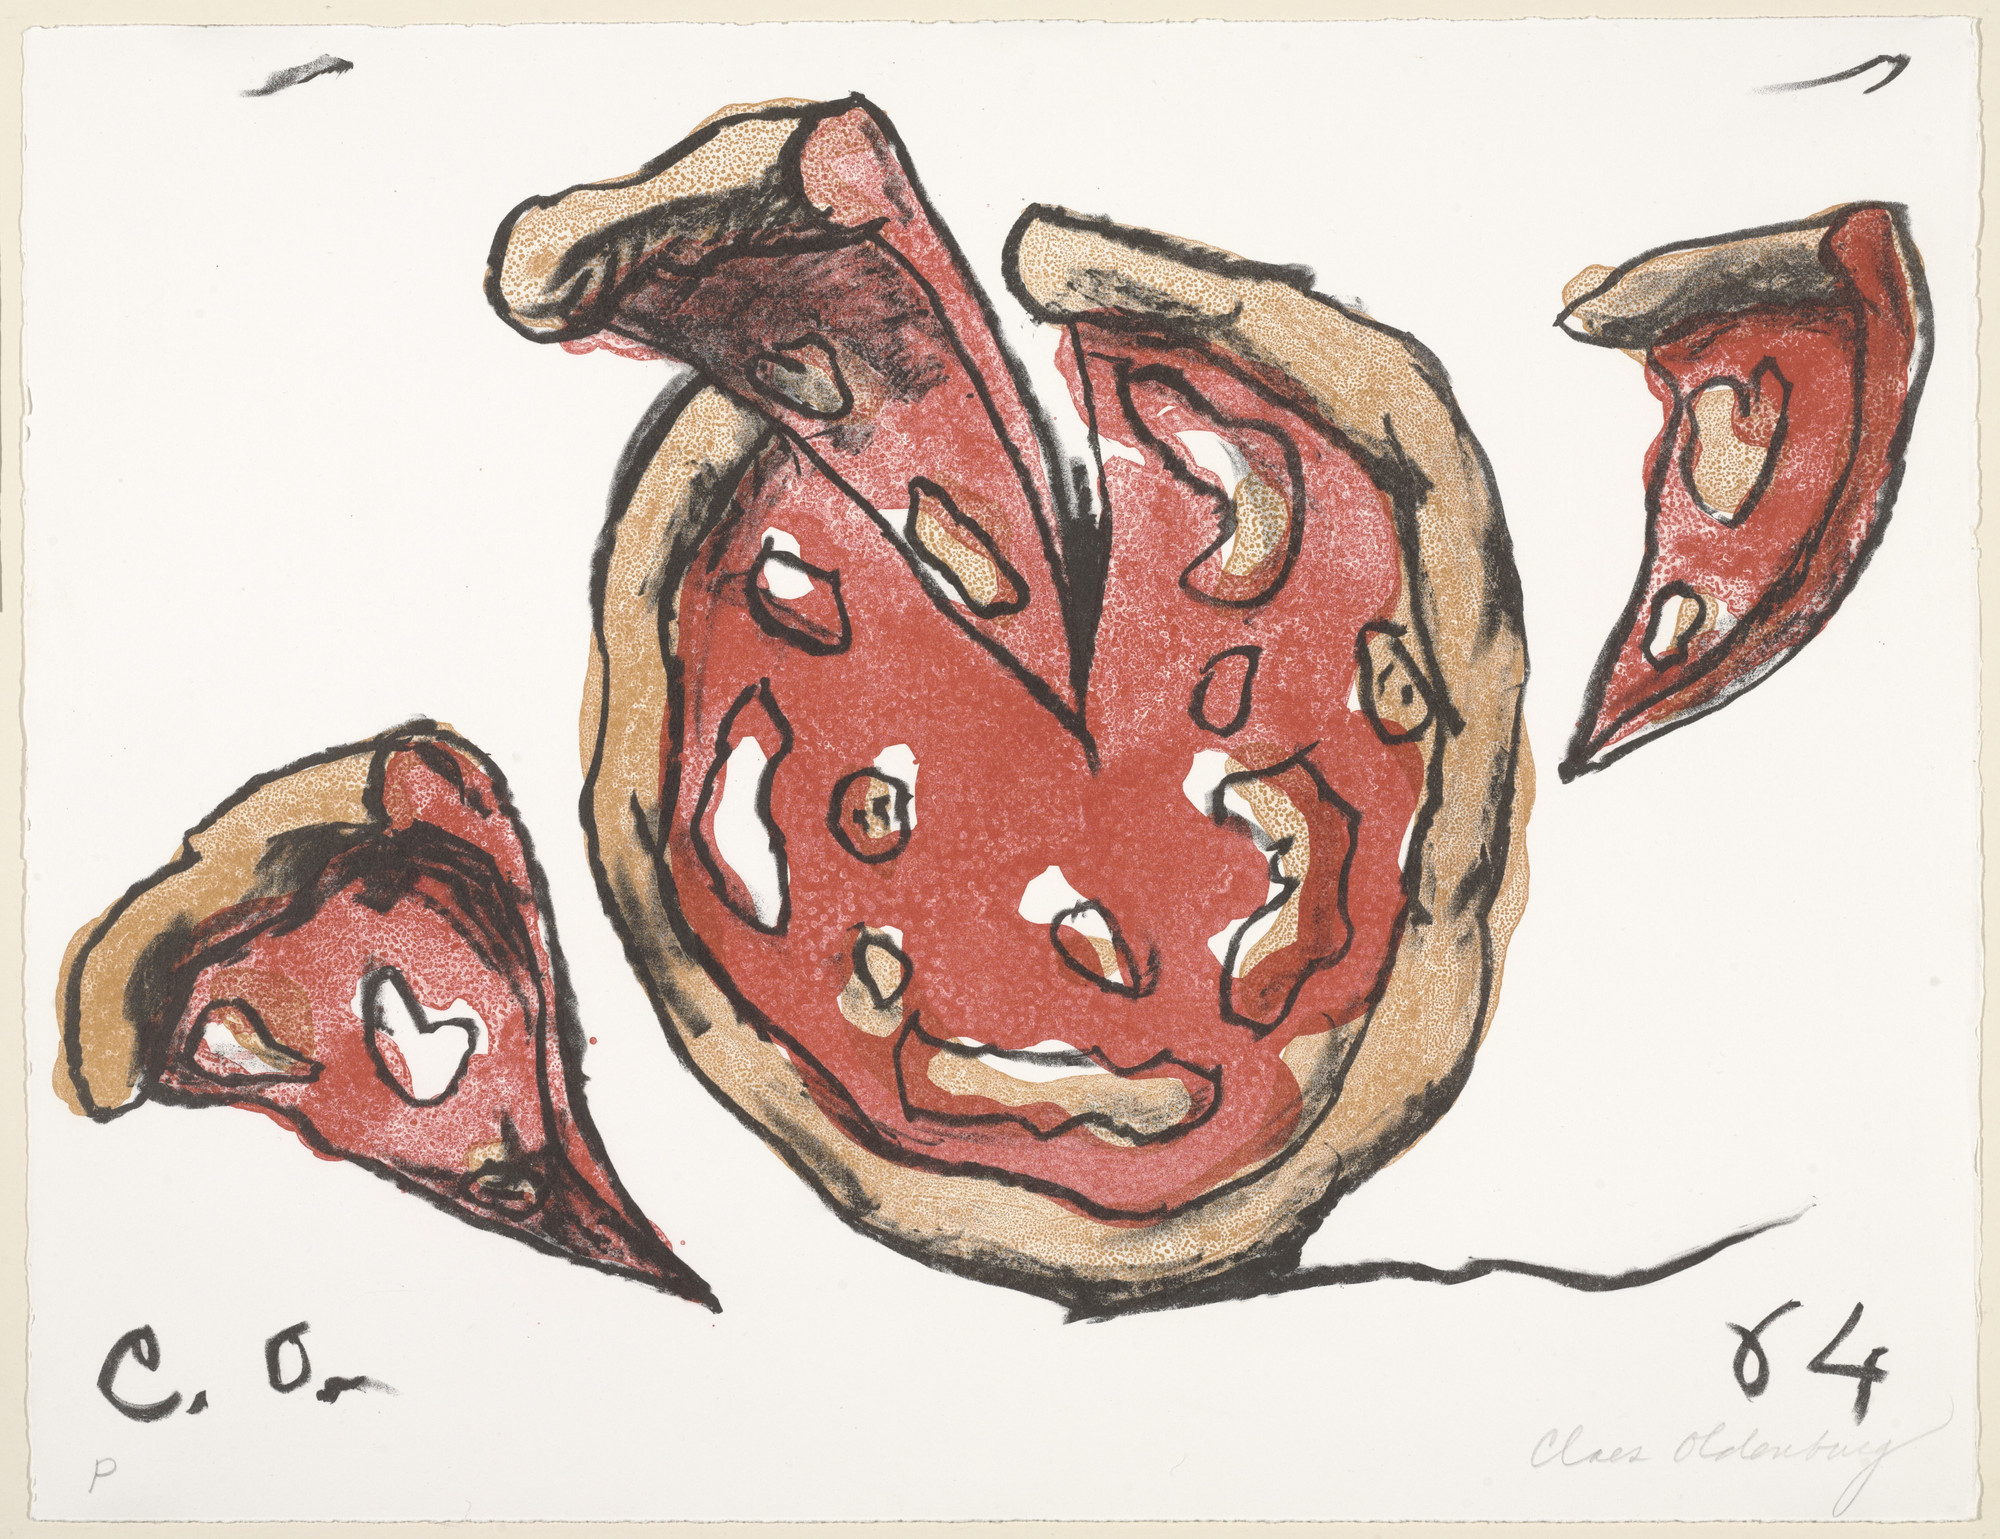 Claes Oldenburg. Flying Pizza from New York Ten. 1964, published 1965